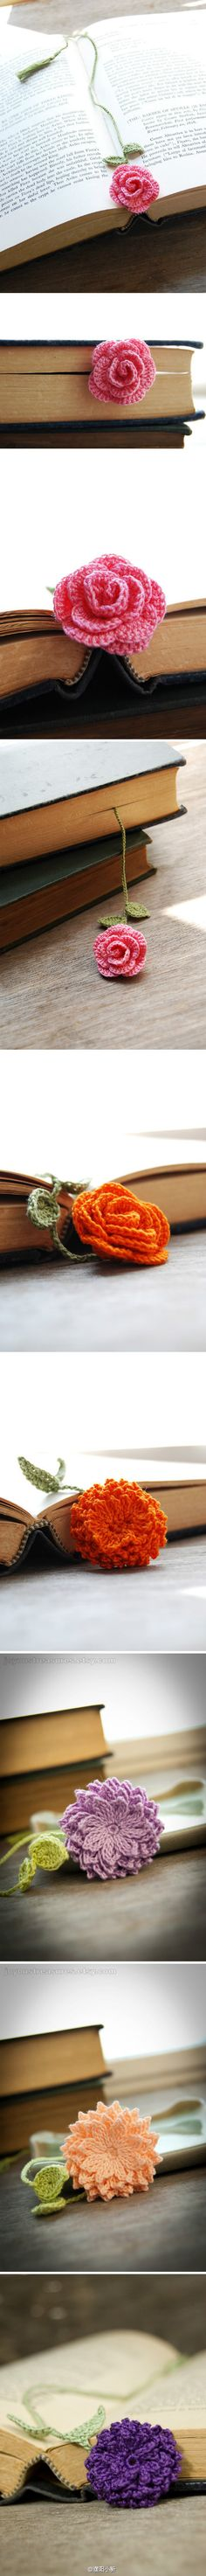 Pretty bookmarks - crochet flowers. Choose your favorite crochet flower pattern and color. Voila!